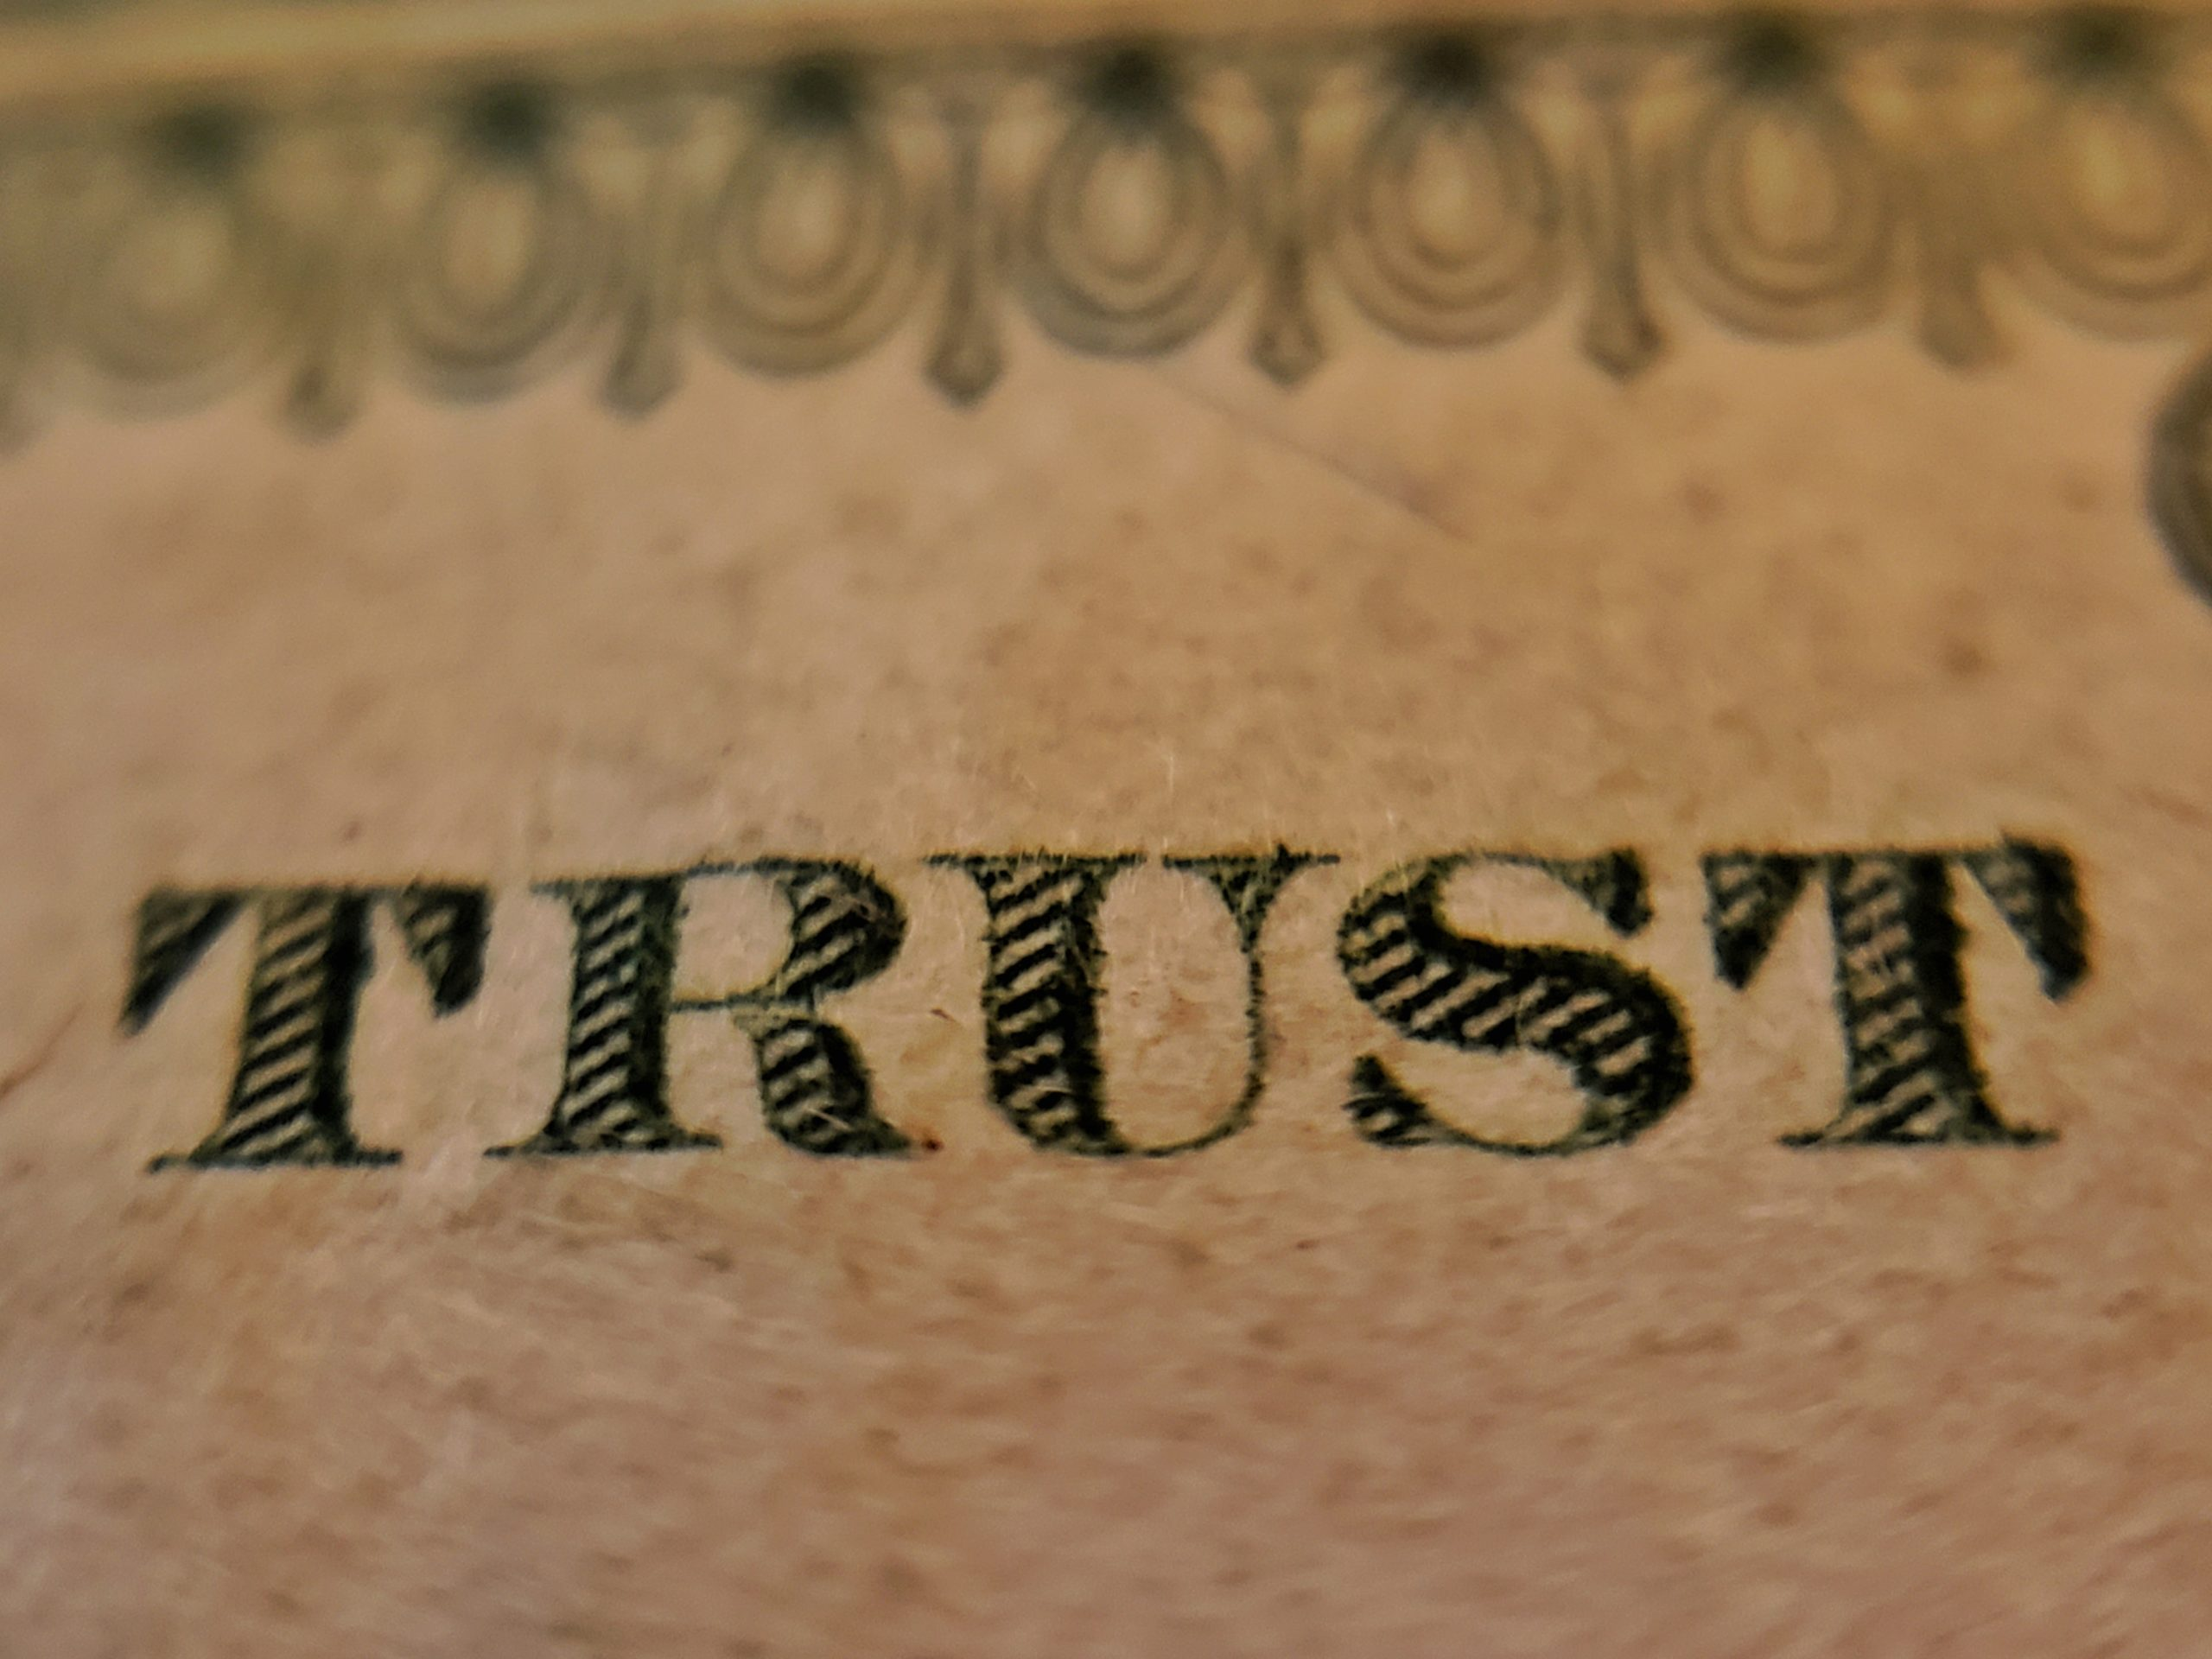 What Do Trust, Coffee Groups, and Friendly Banks have to do with Justice?